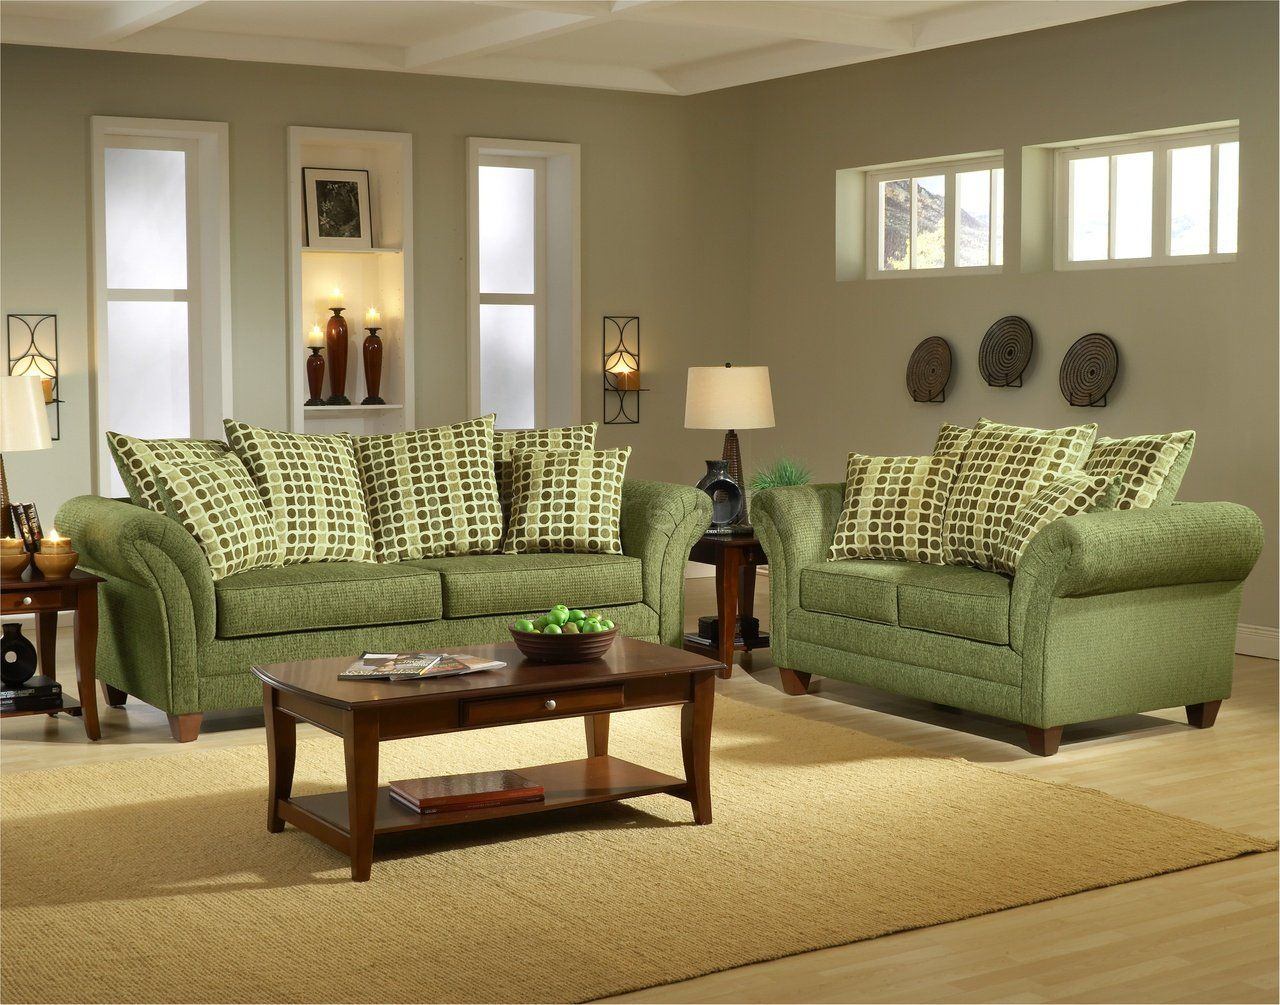 16 contemporary living room design inspirations 2012 | green